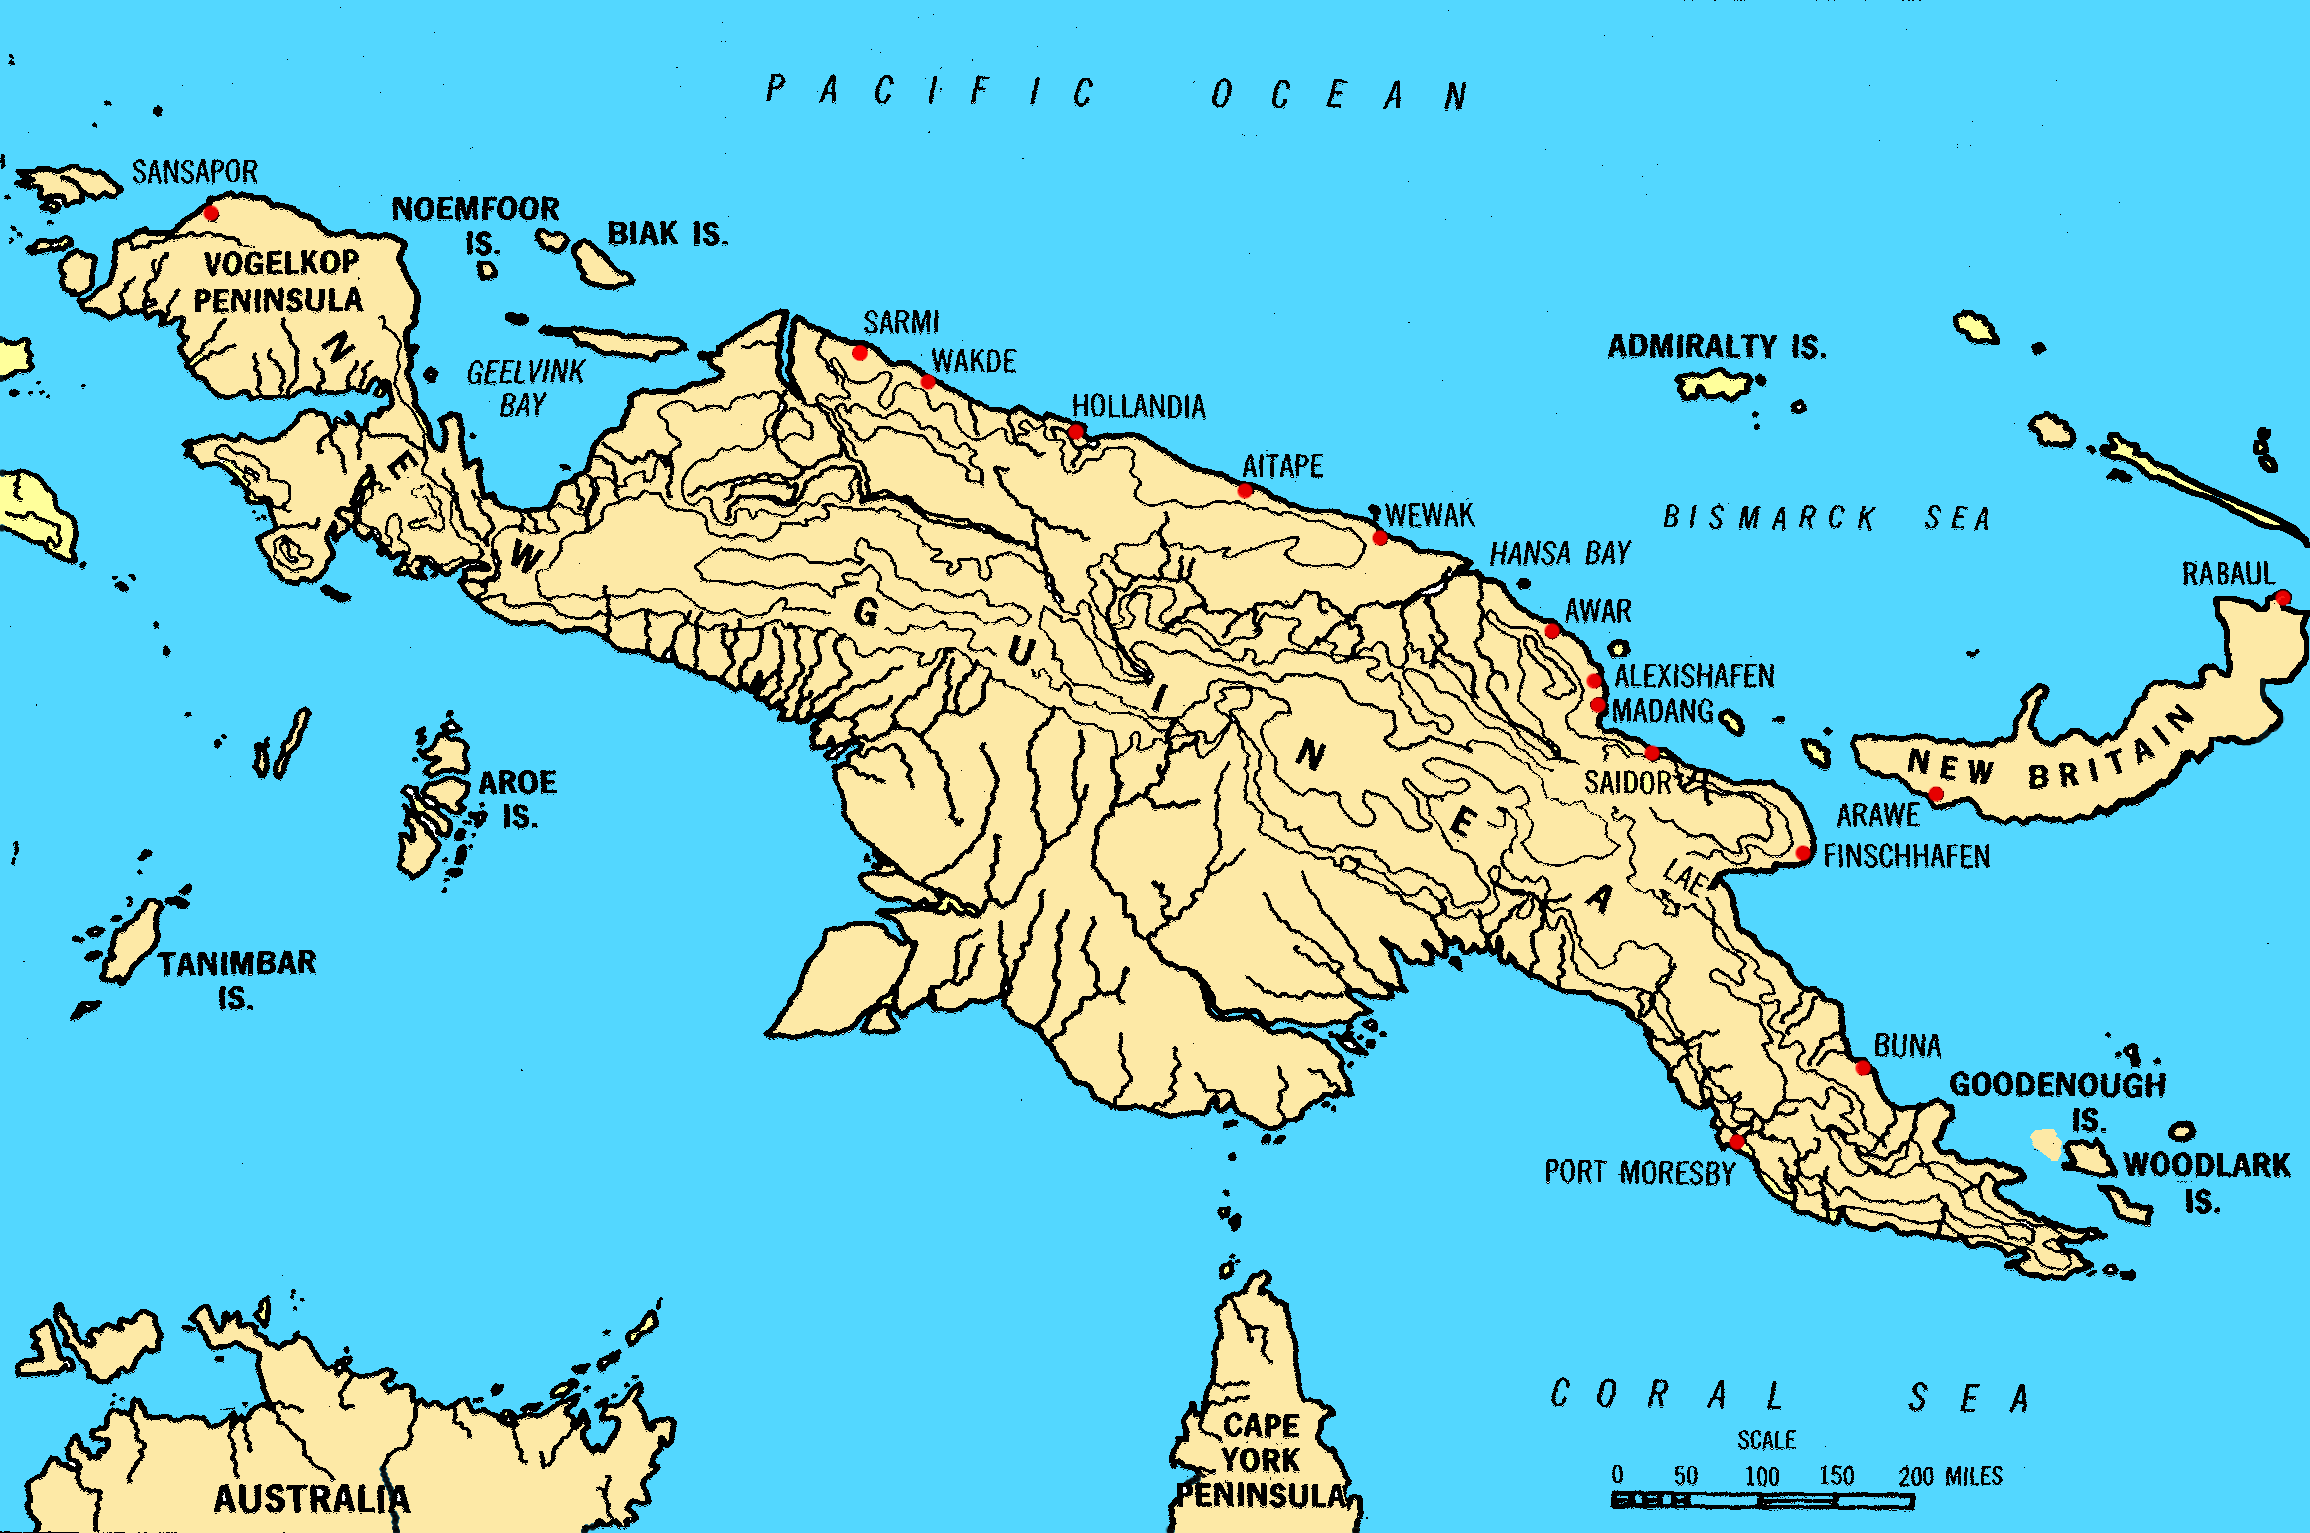 pics Putting Papua New Guinea on the map